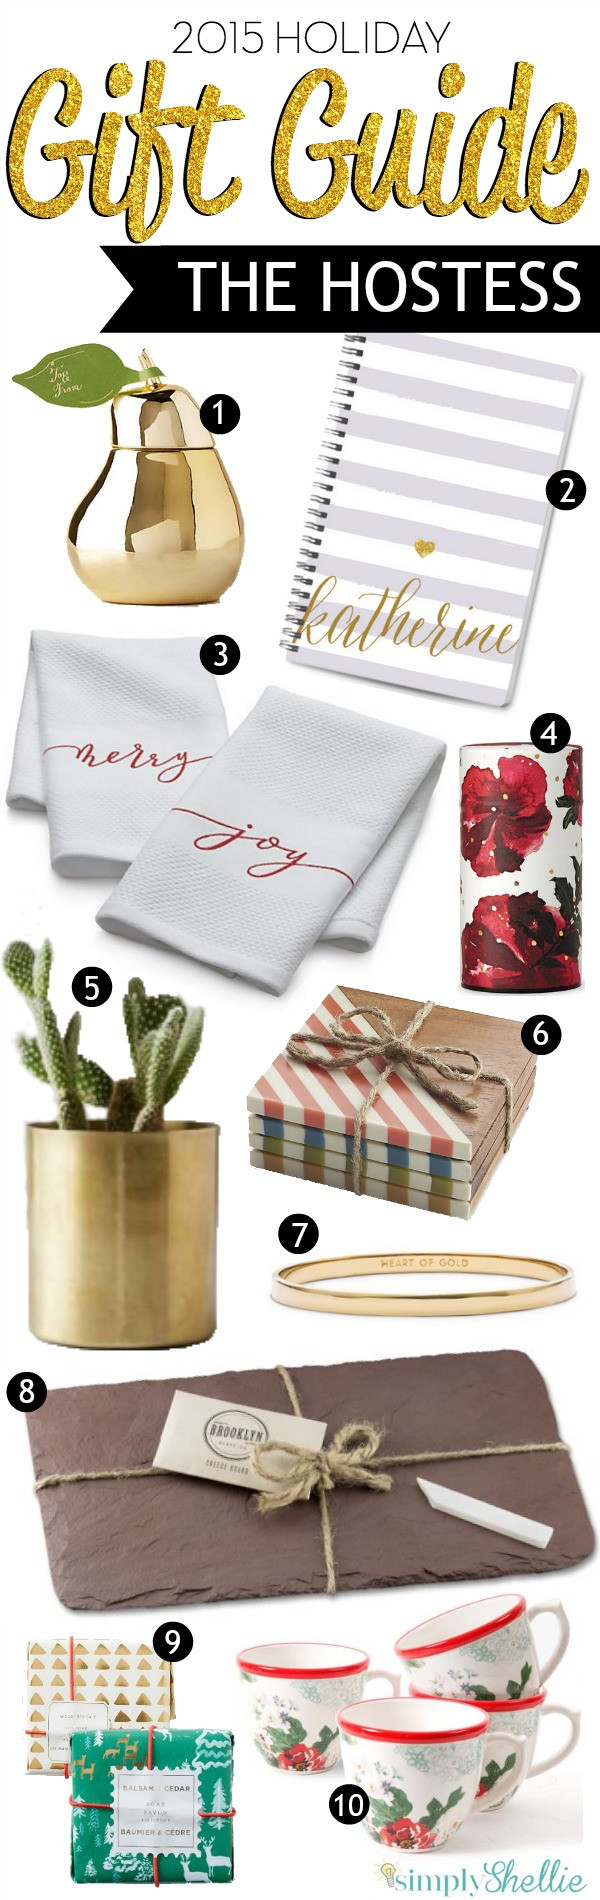 Best ideas about Christmas Hostess Gift Ideas . Save or Pin Holiday Gift Guide Fabulous Hostess Gift Ideas Now.